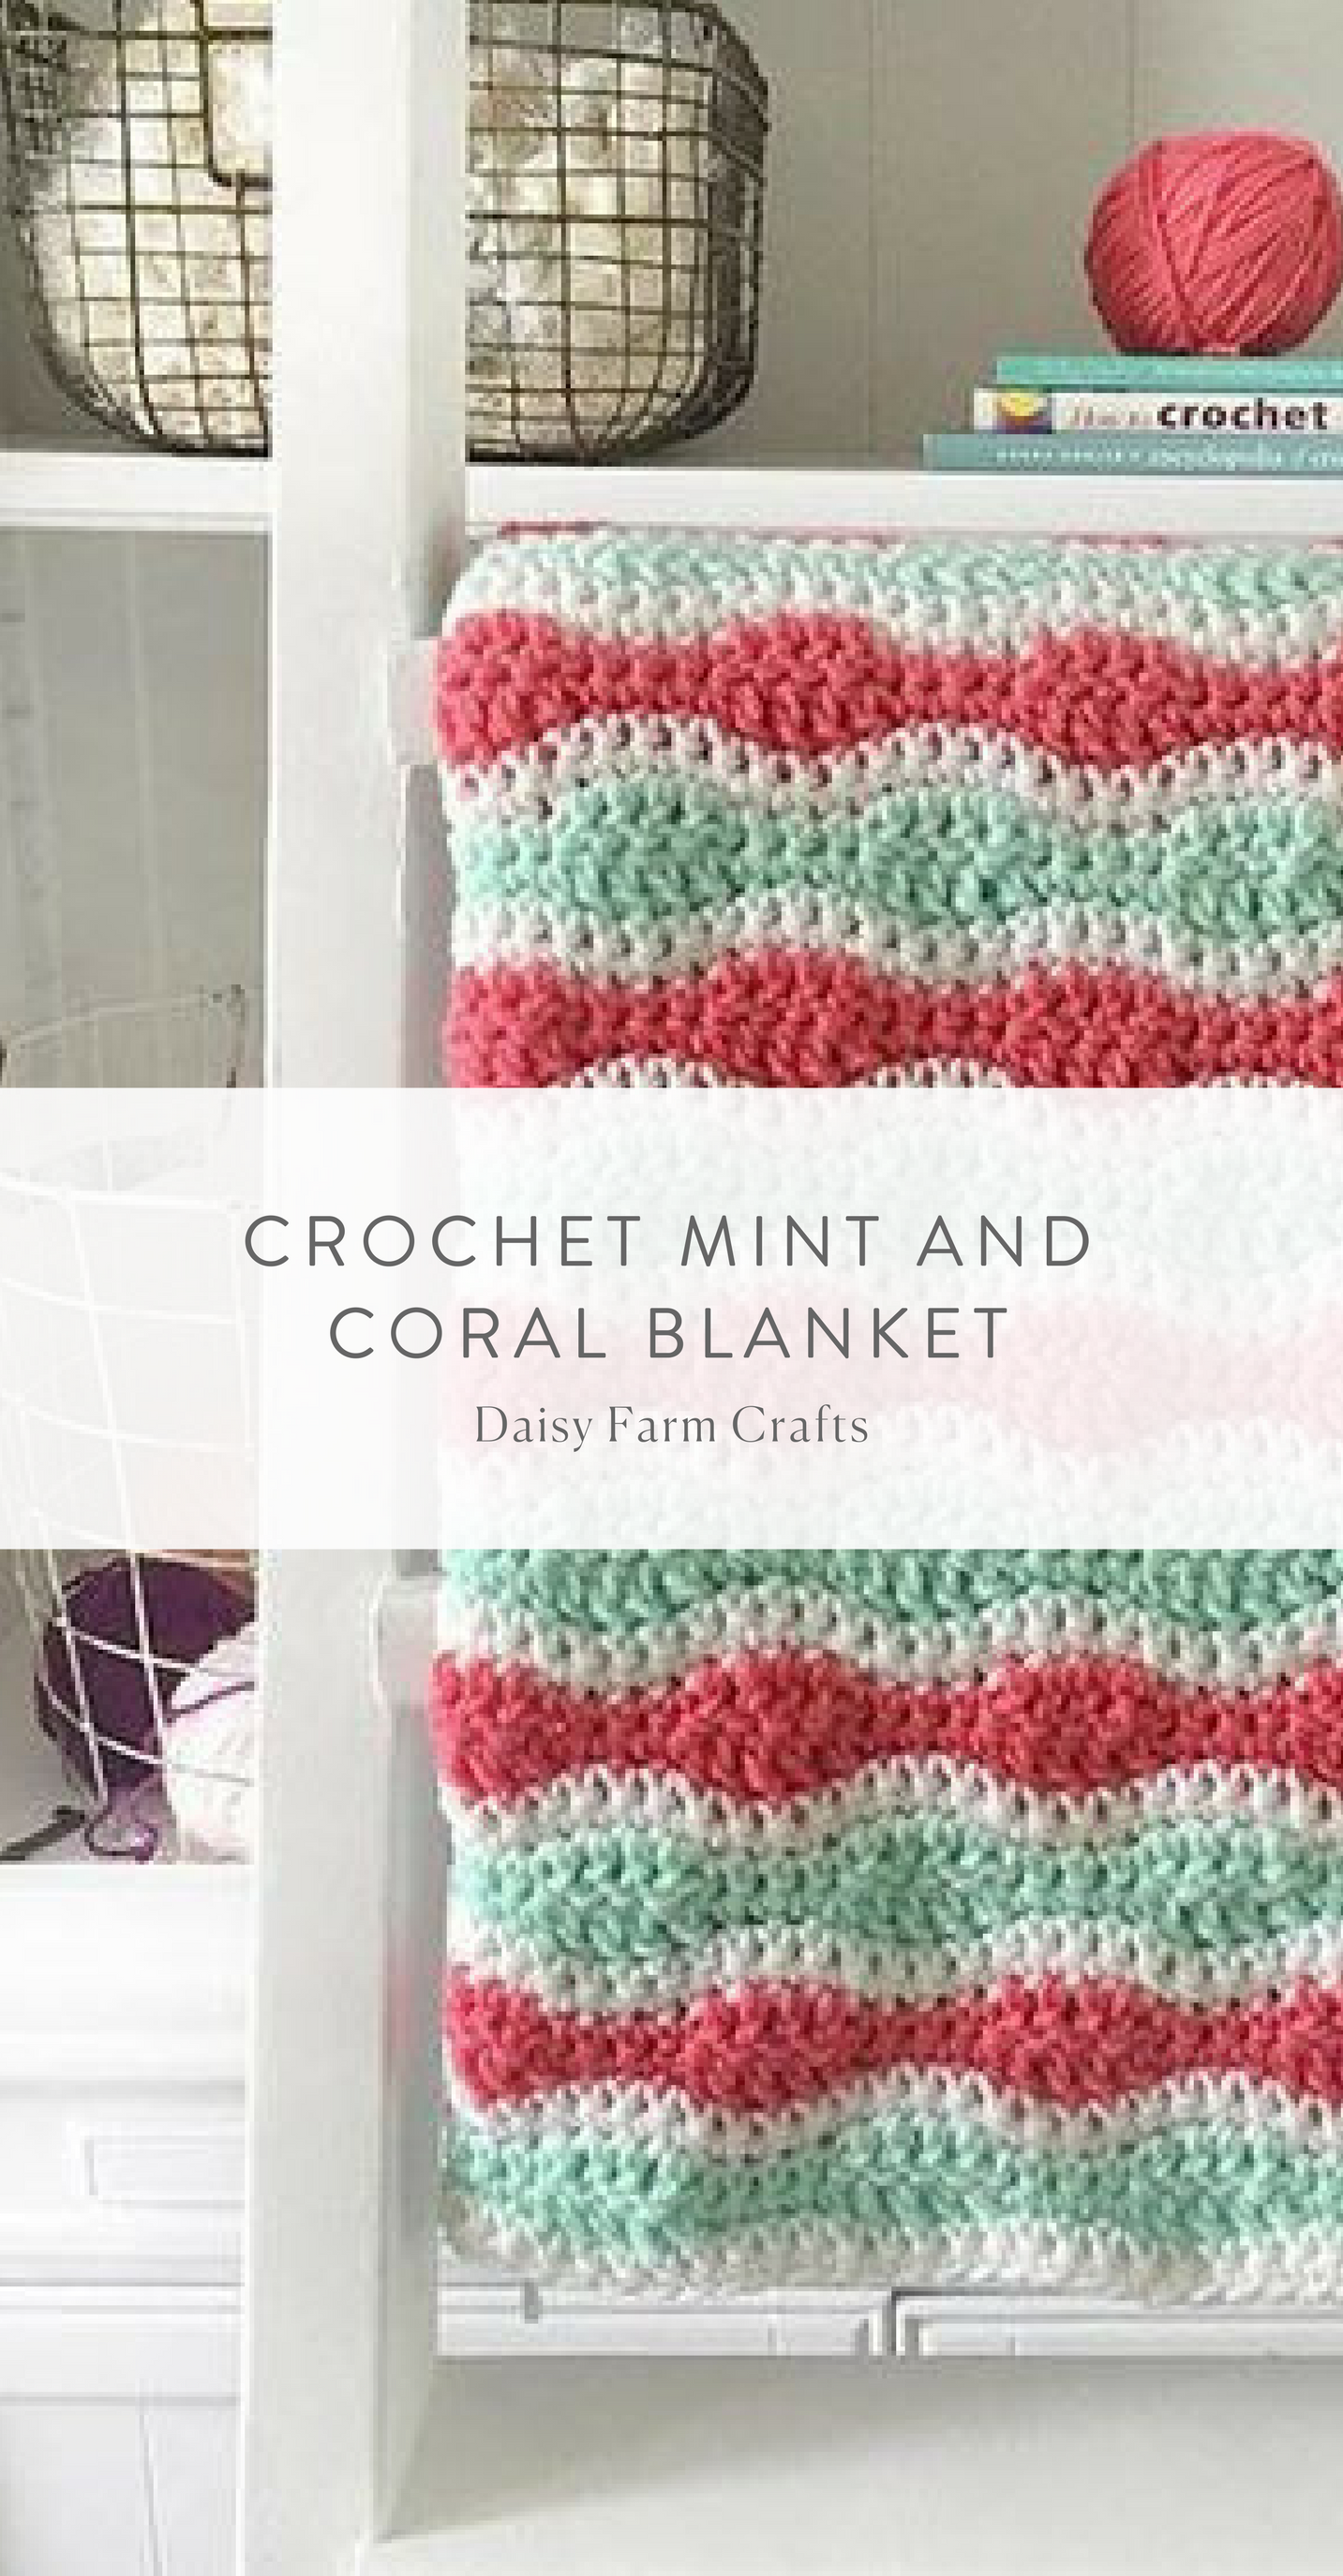 Free Pattern - Crochet Mint and Coral Blanket | Crochê | Pinterest ...